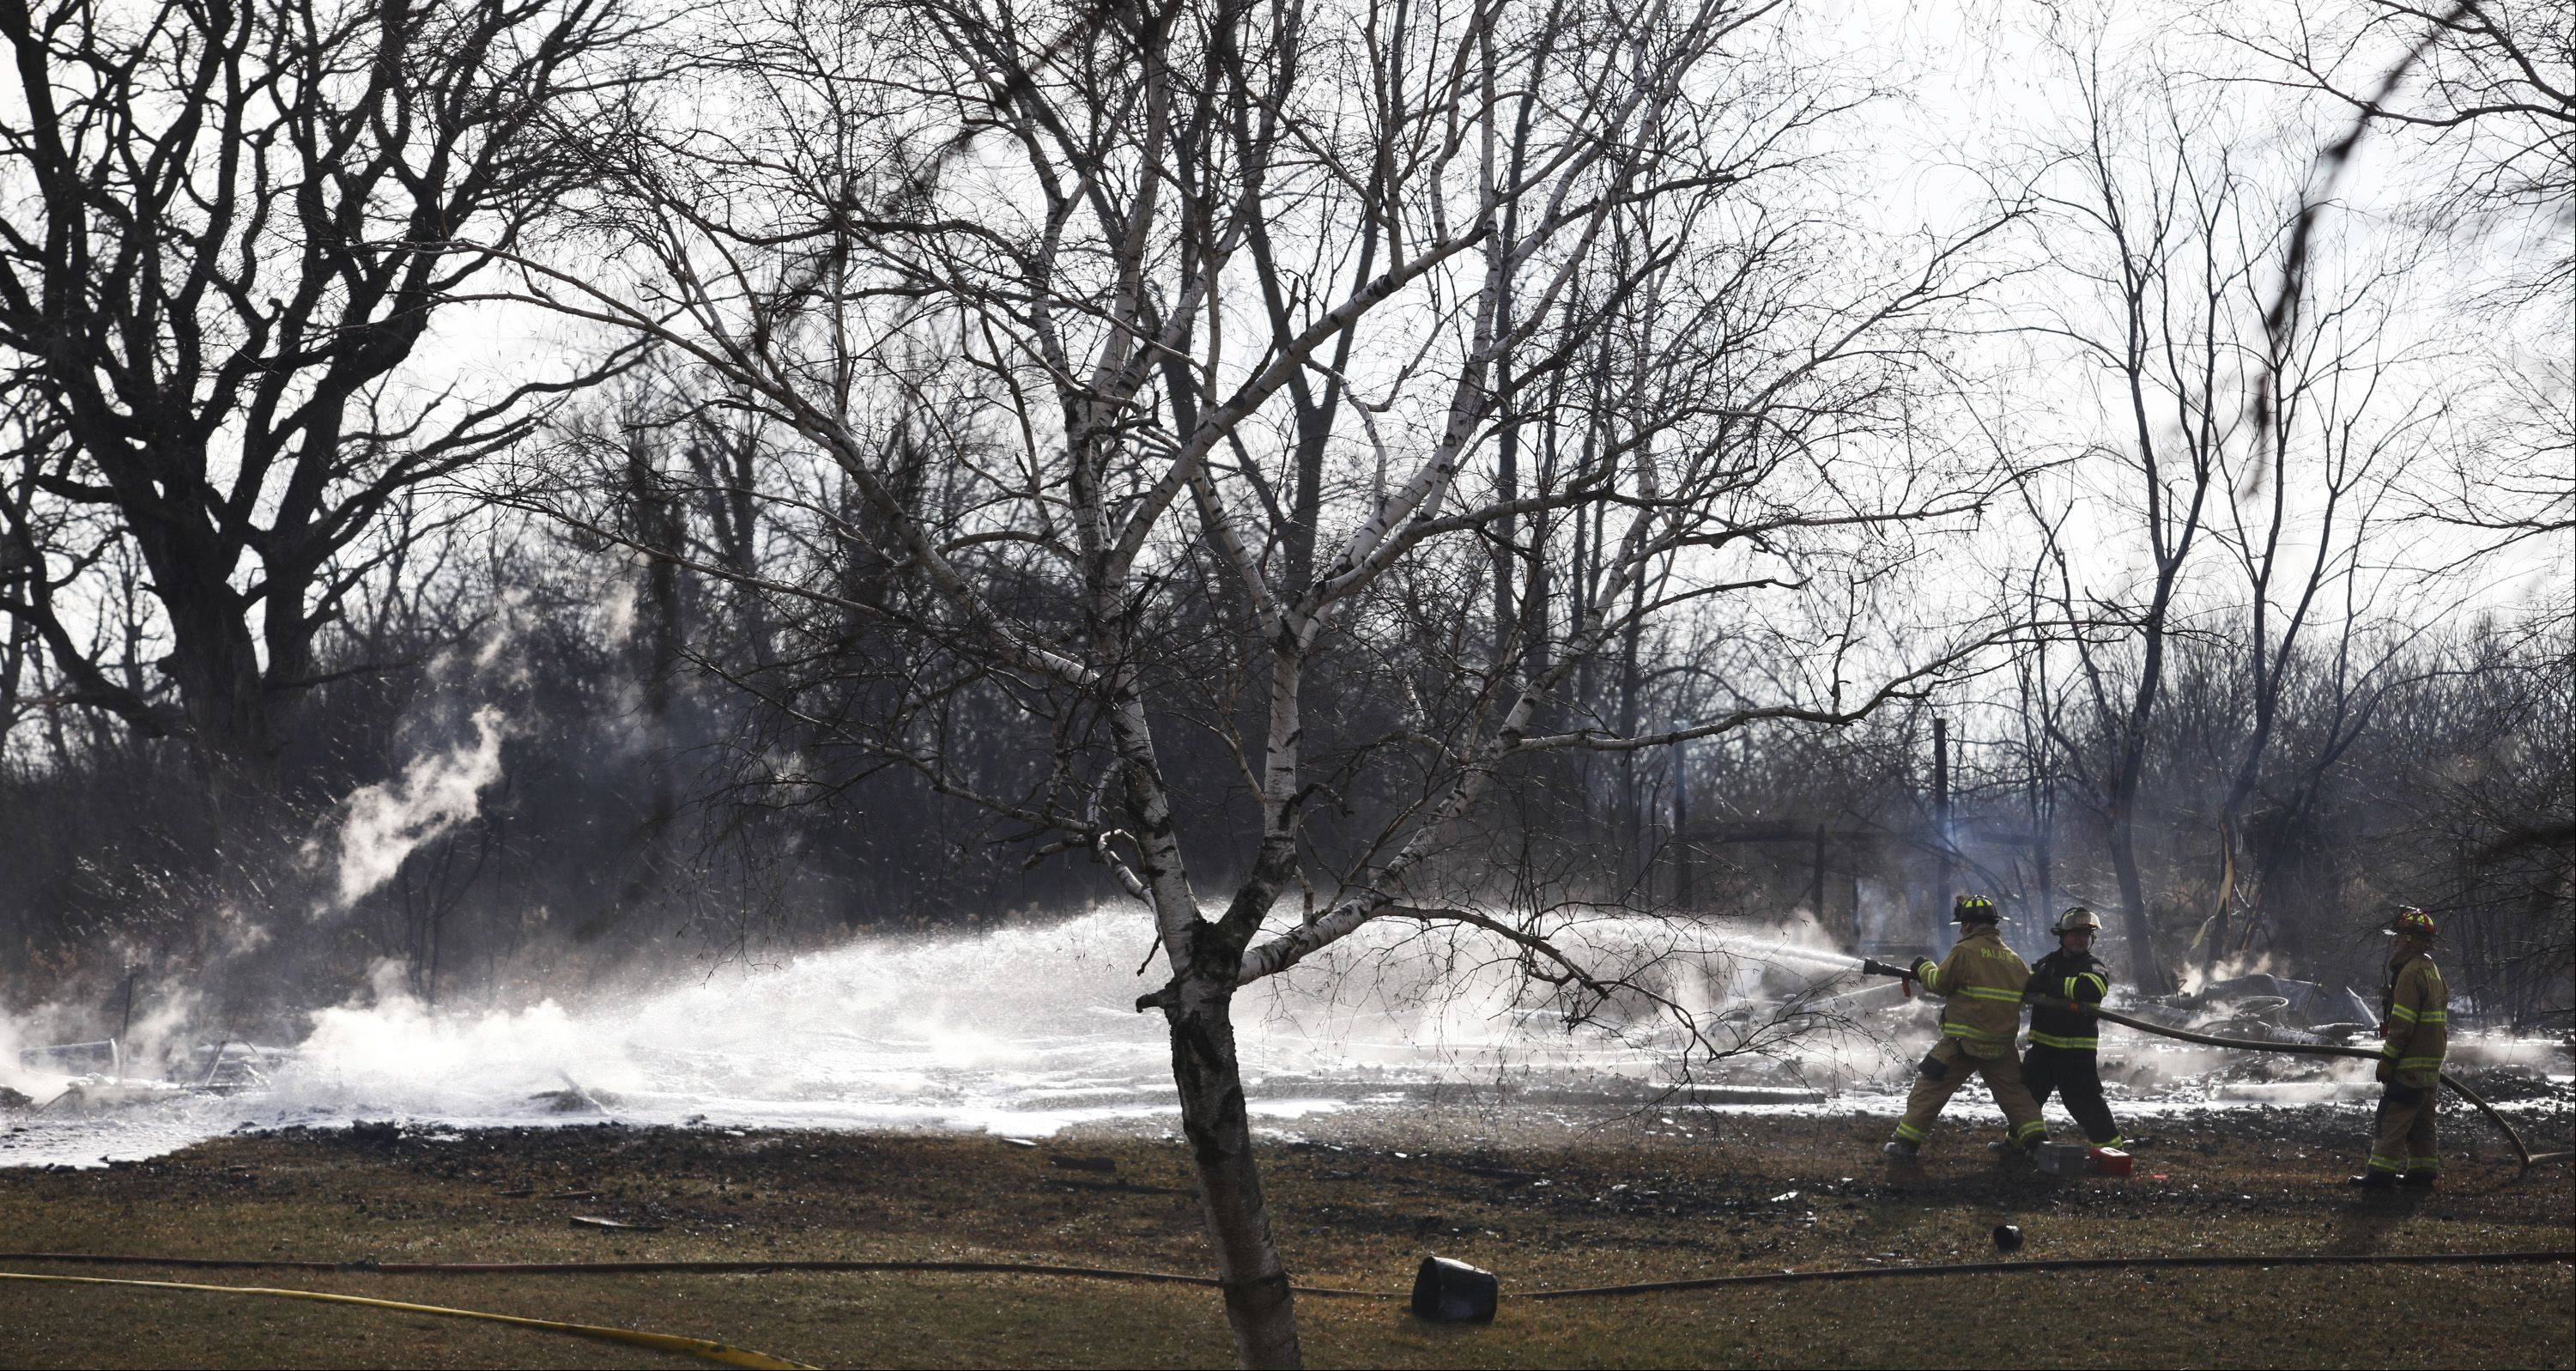 Firefighters pour water on the remnants of a barn fire Tuesday afternoon at a Cook County Forest Preserve District watchman's residence along Penny Road.